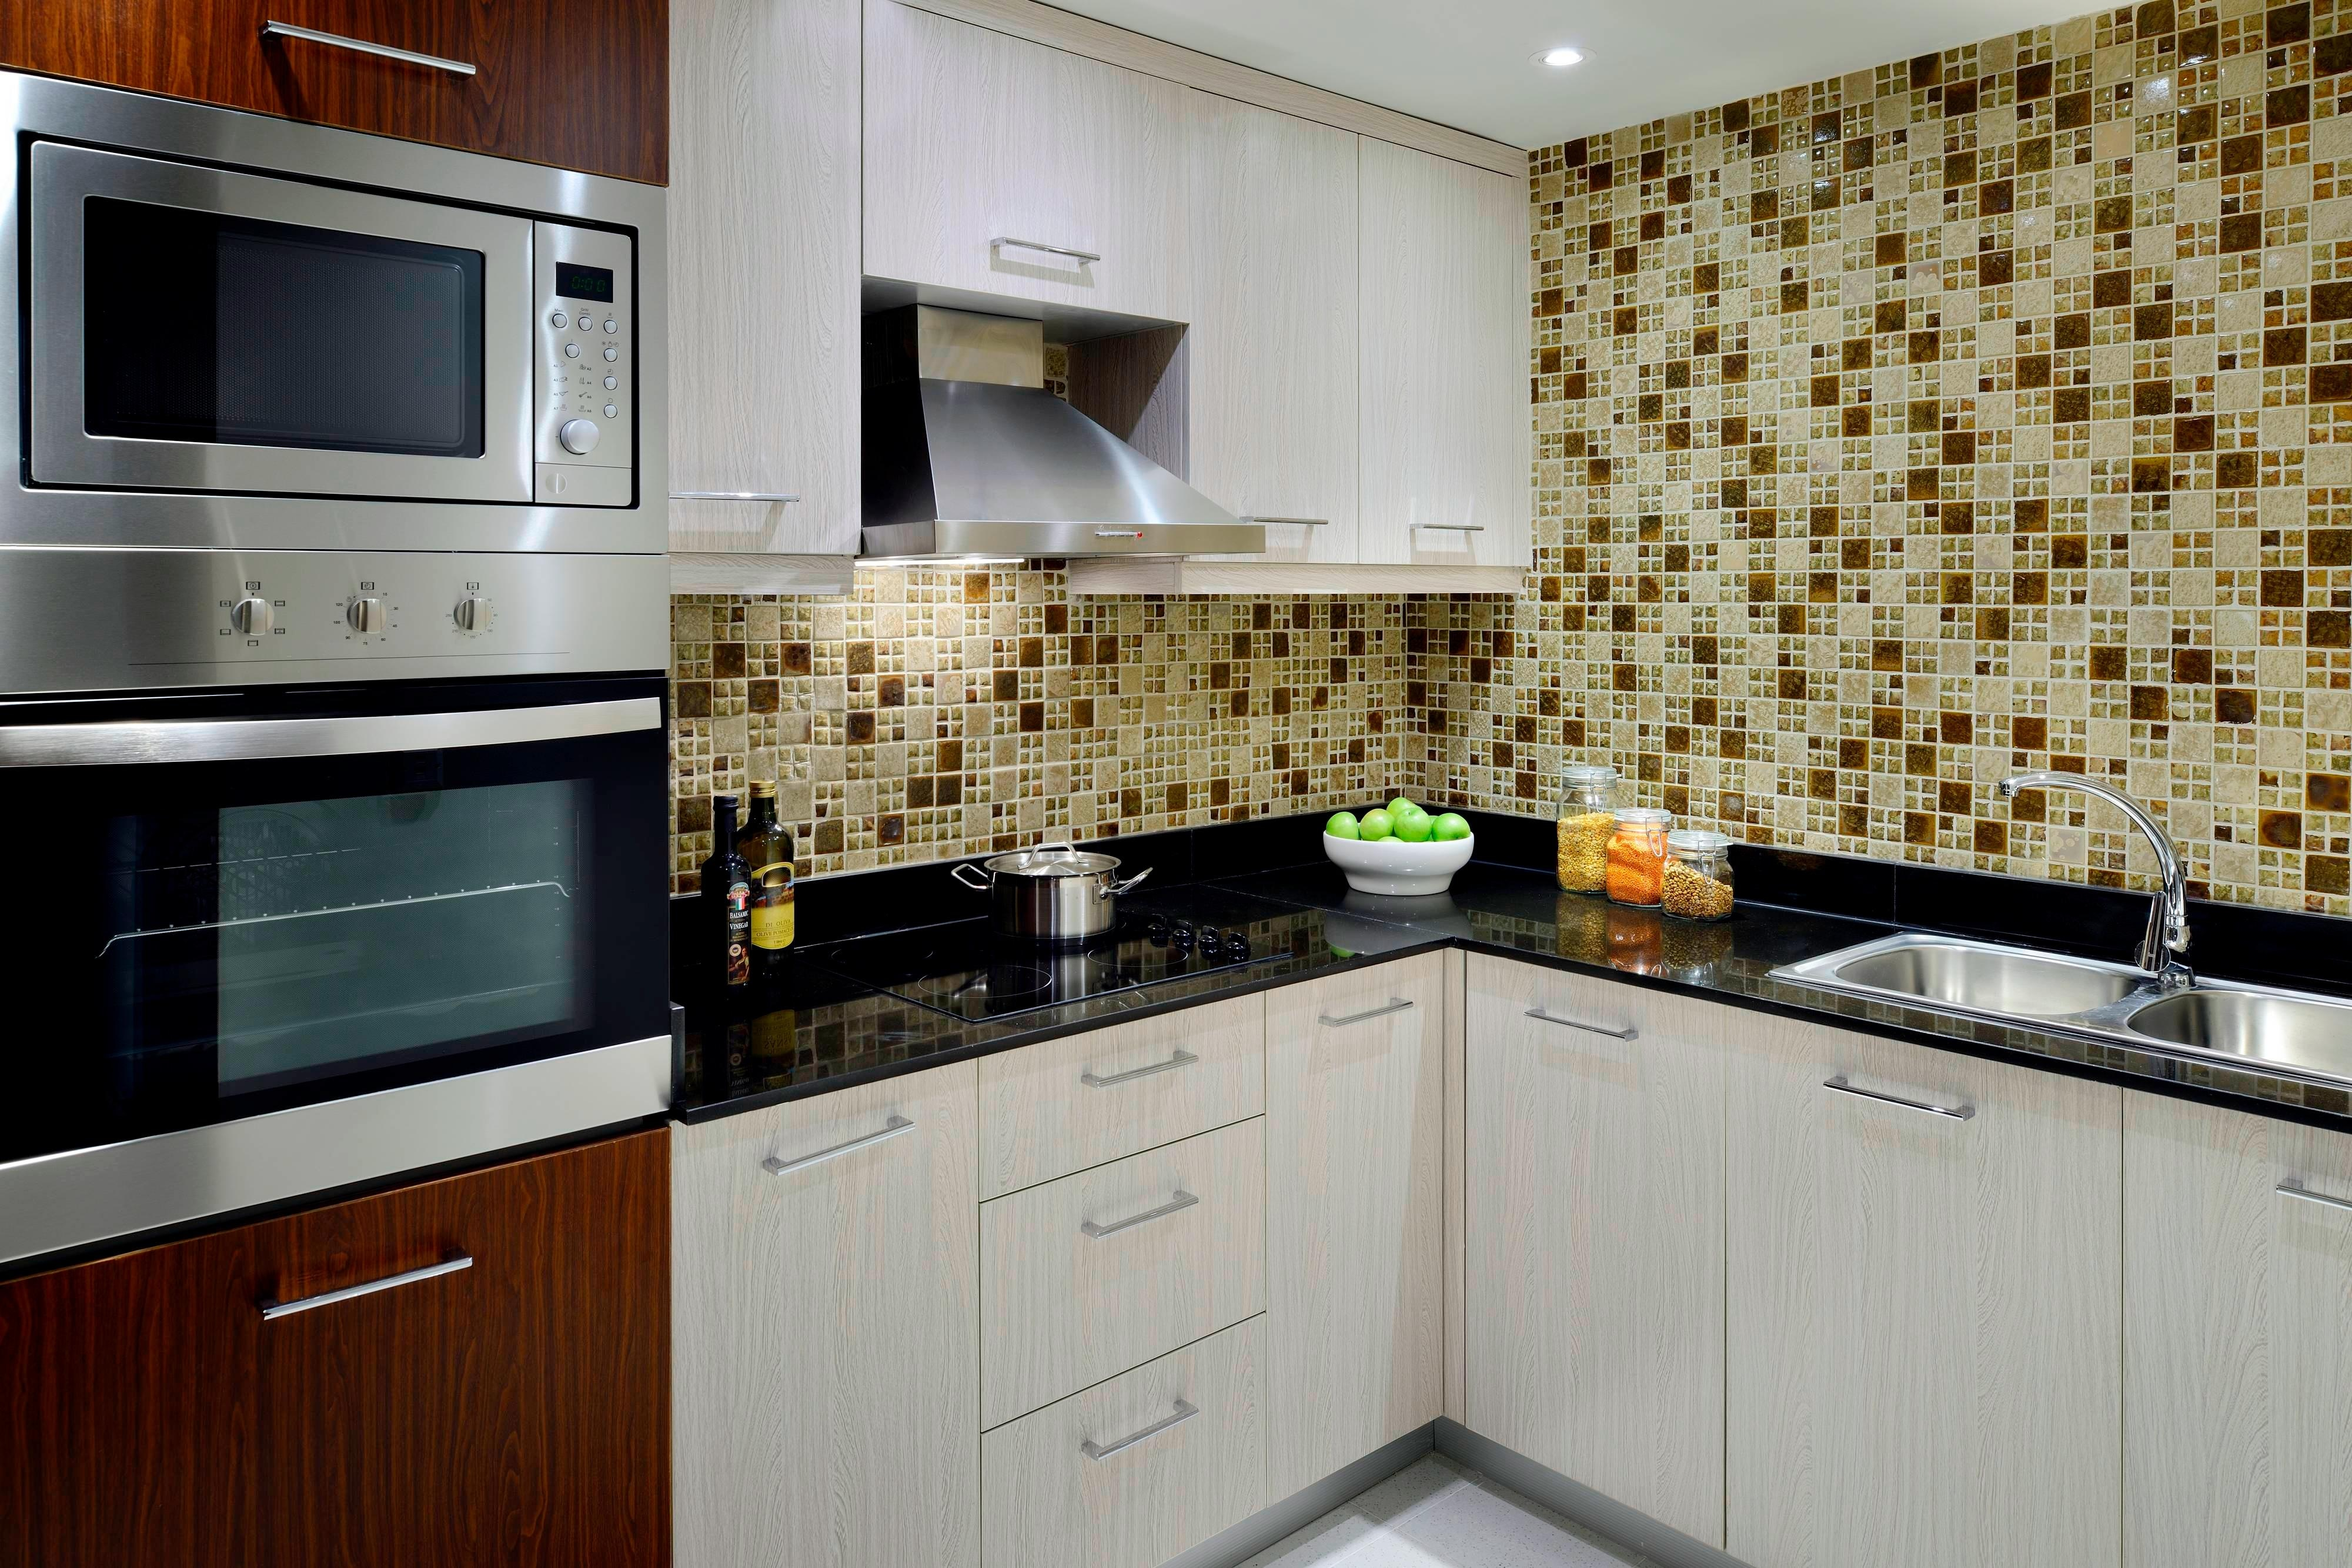 Addis Ababa Marriott Executive Apartments Kitchen